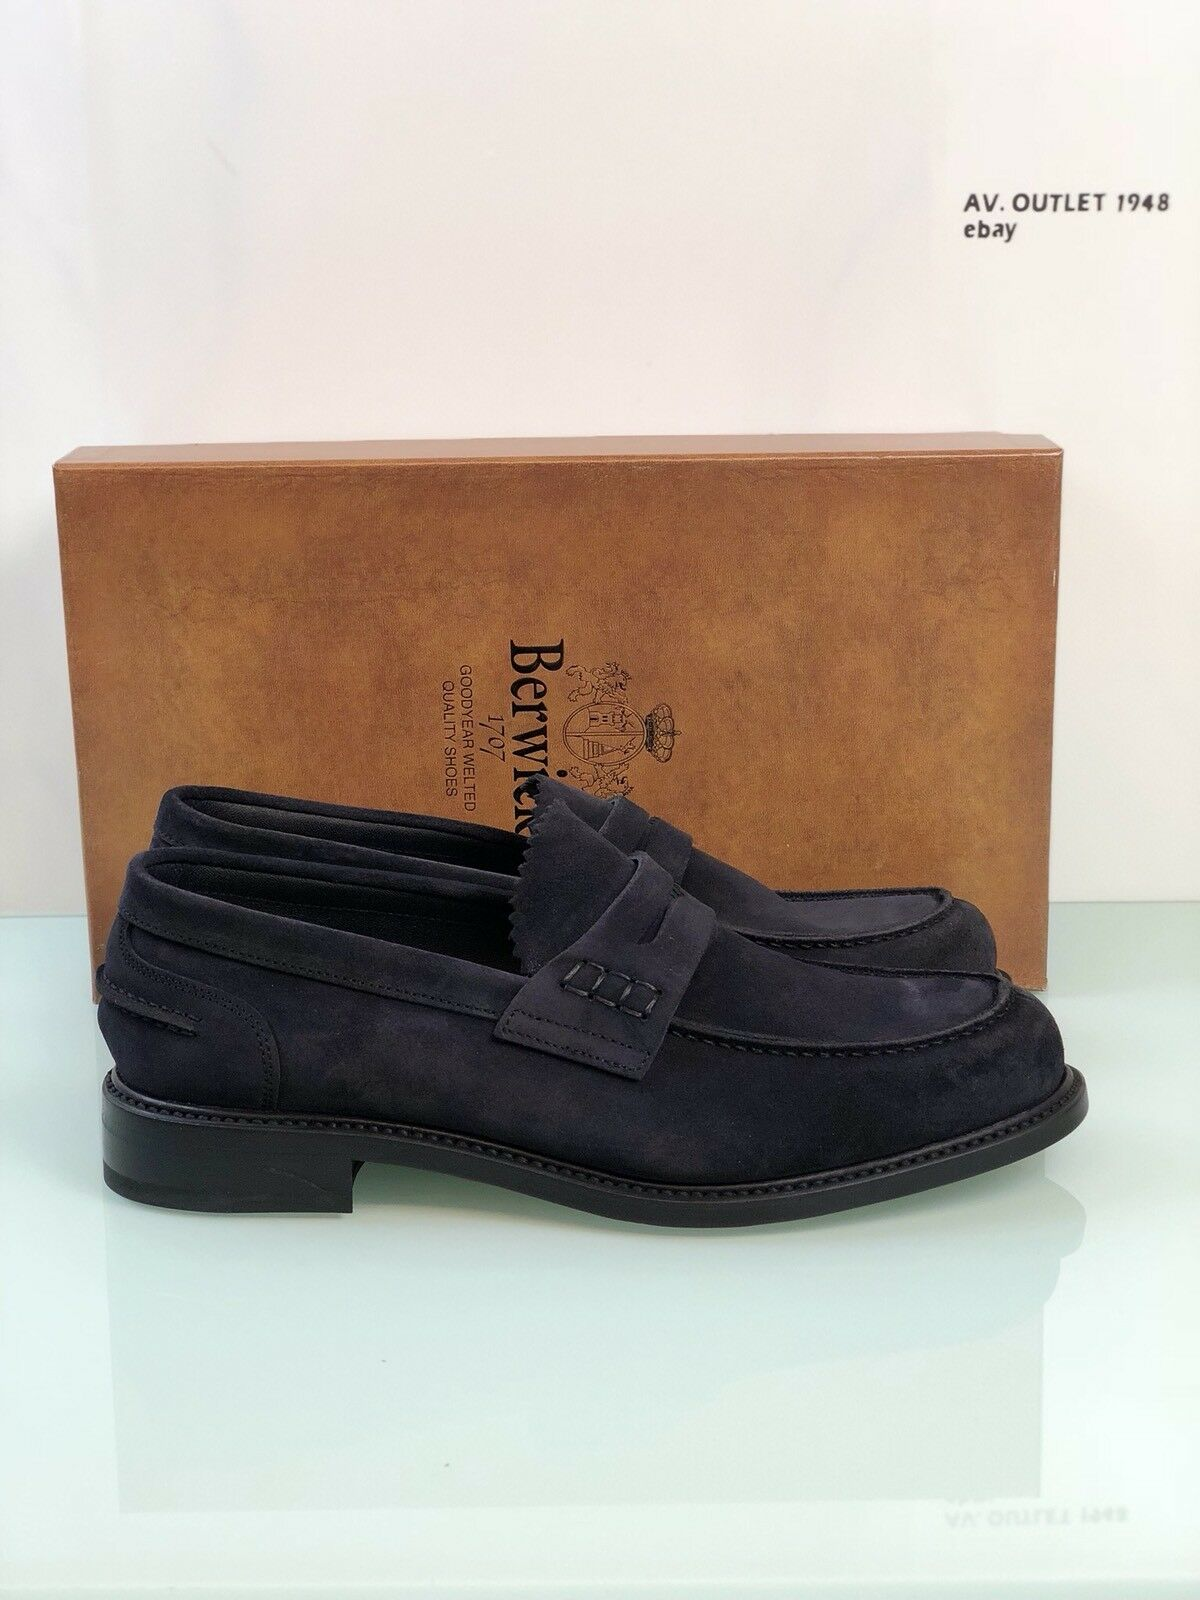 Moccasin Berwick 1707 Man Model 3961 Suede Goodyear Welted